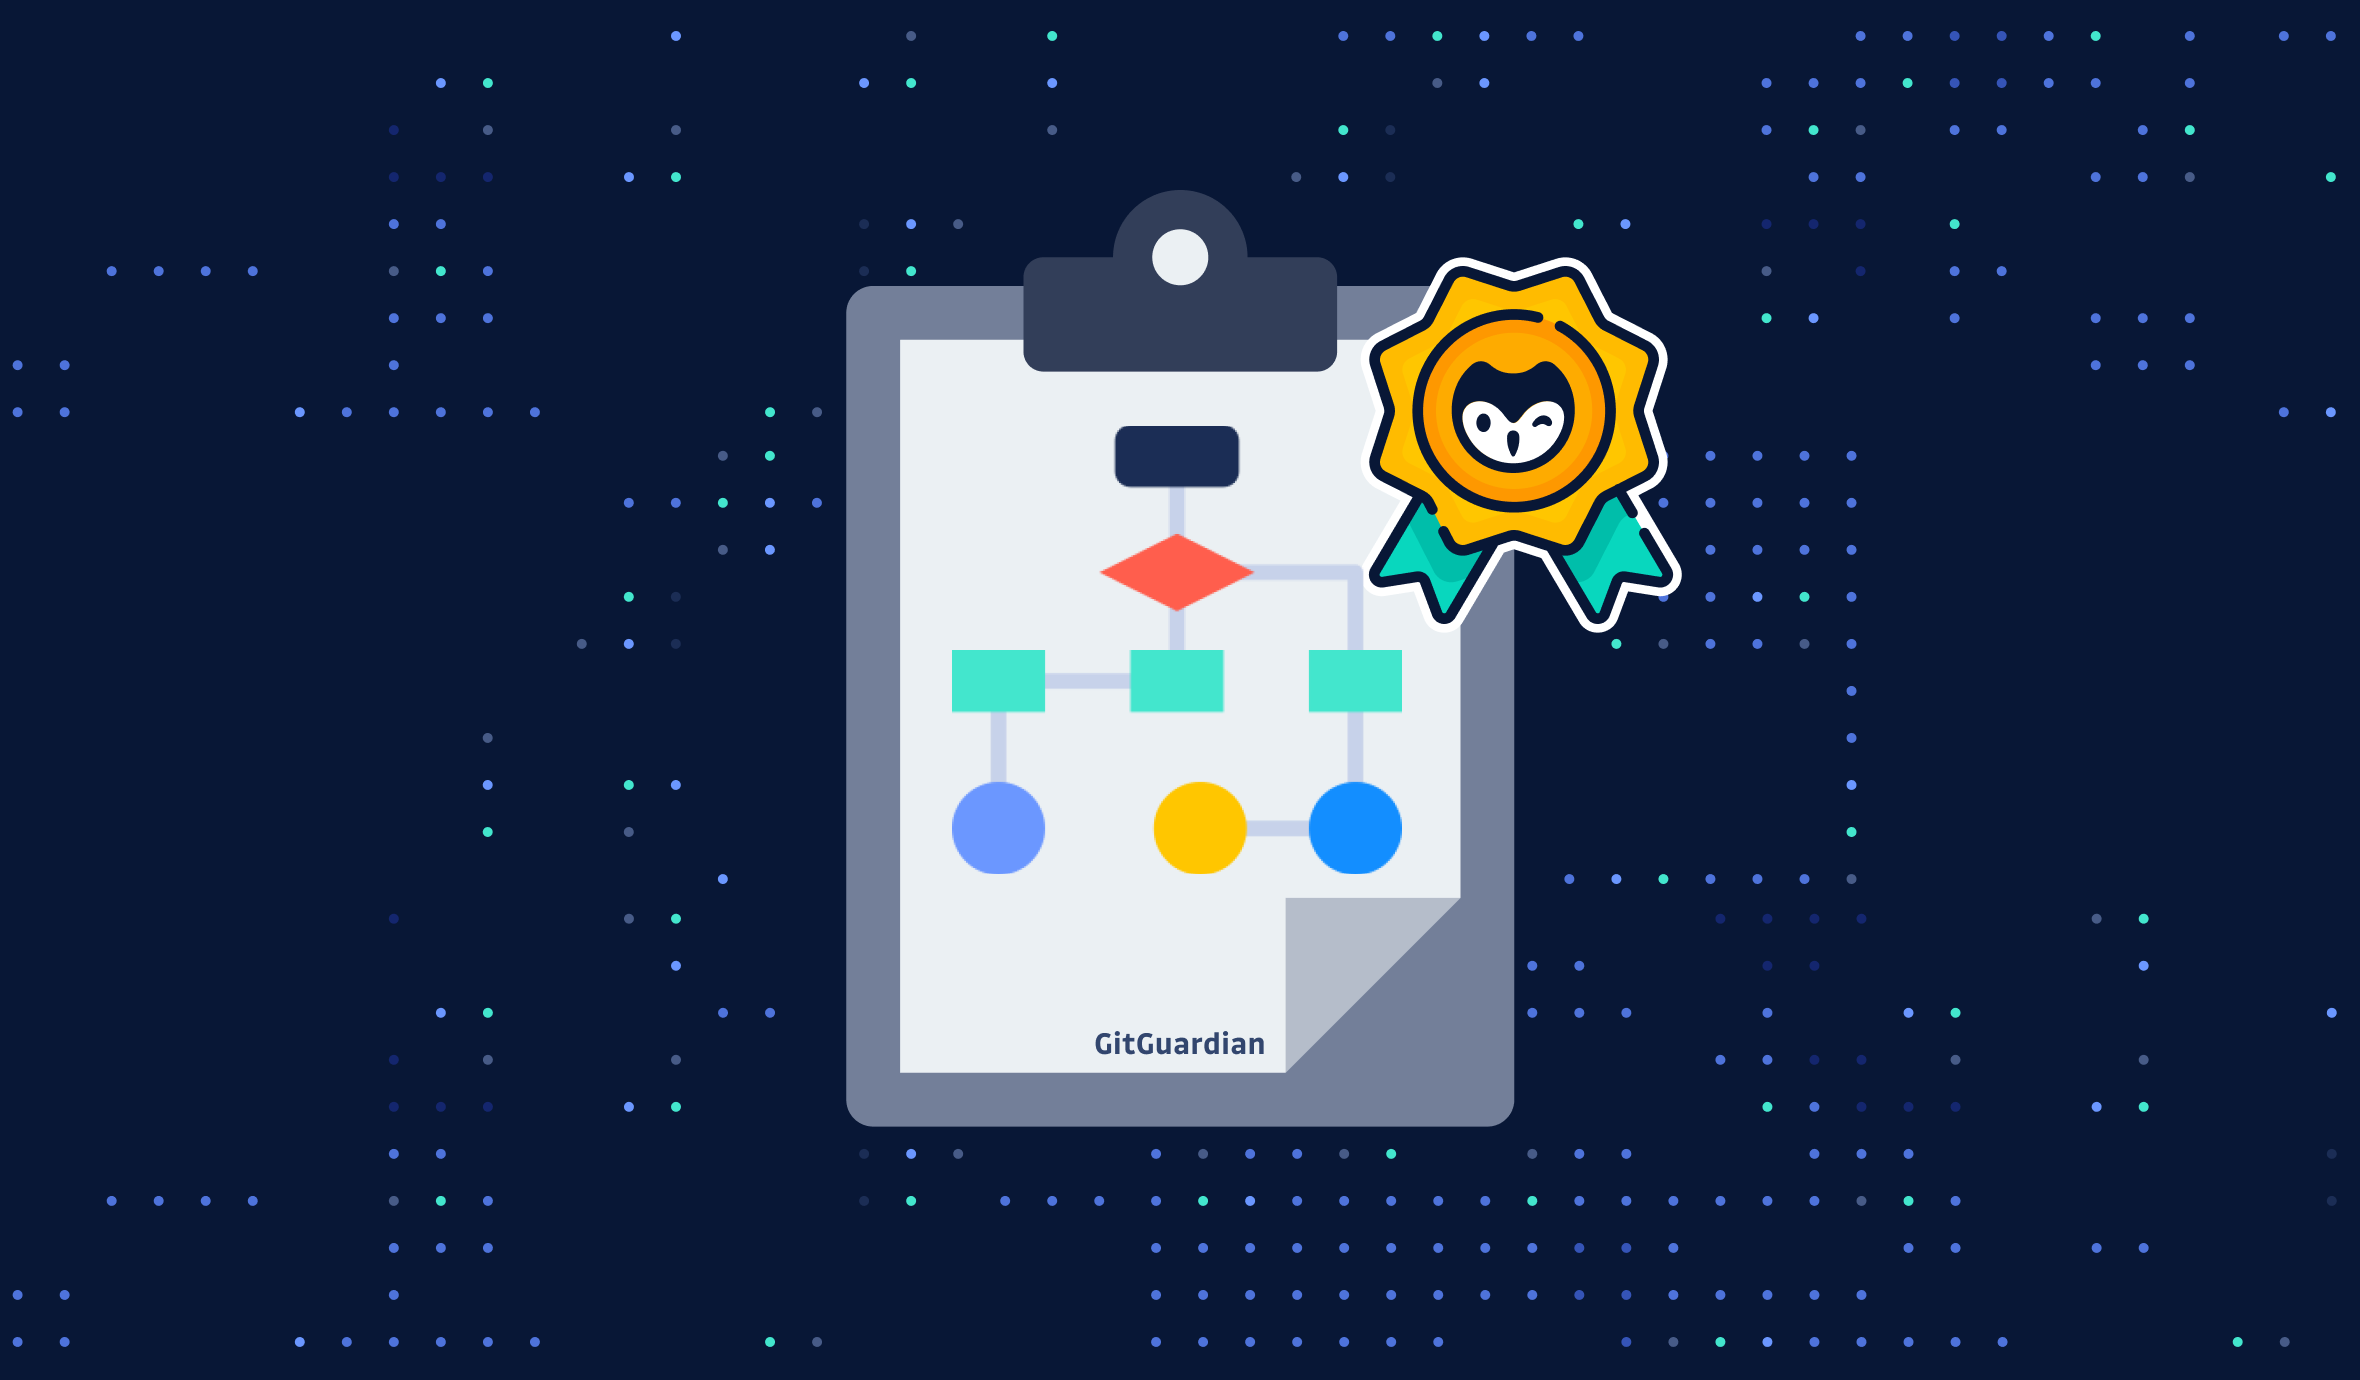 Rewriting your git history, removing files permanently - cheatsheet & guide